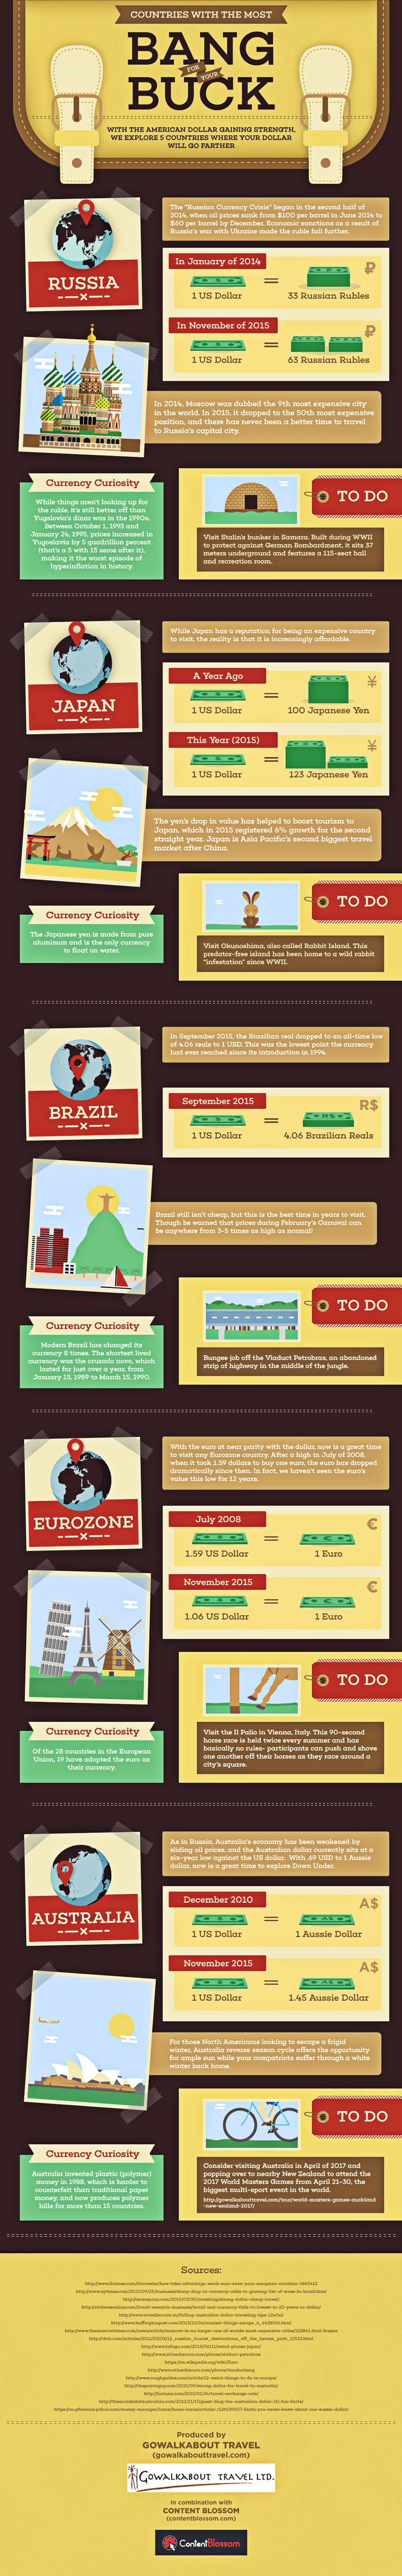 https://www.gowalkabouttravel.com/wp-content/uploads/2015/12/go_walk_about_travel_infographic795.jpg